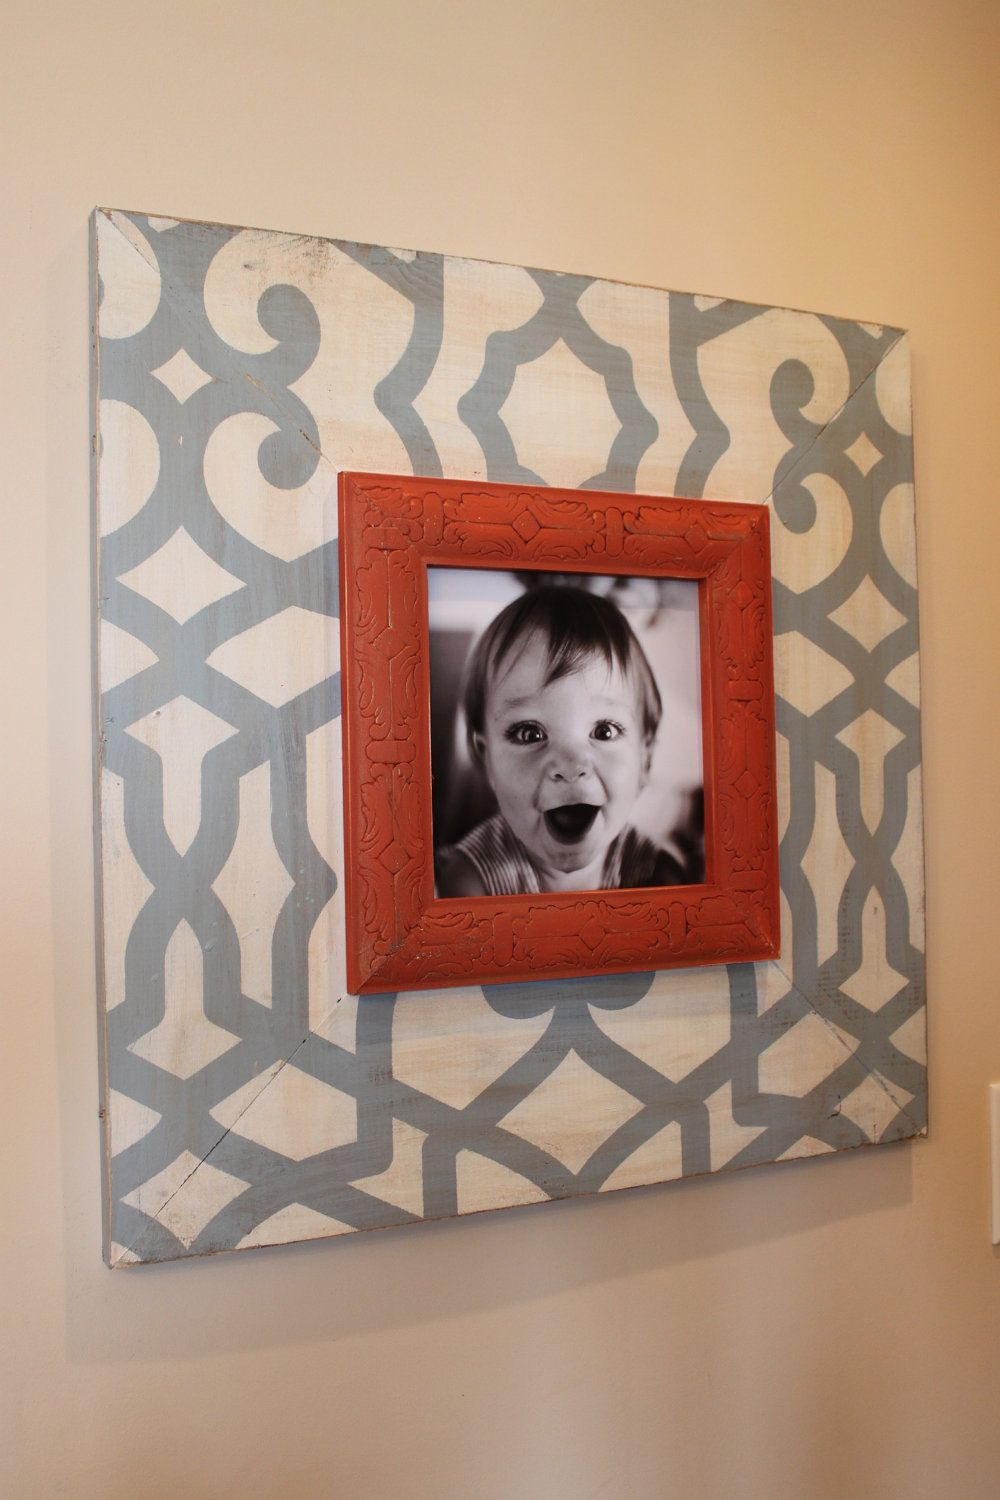 Fretwork Distressed 8x8 or 8x10 Wood Picture Frame with 8\